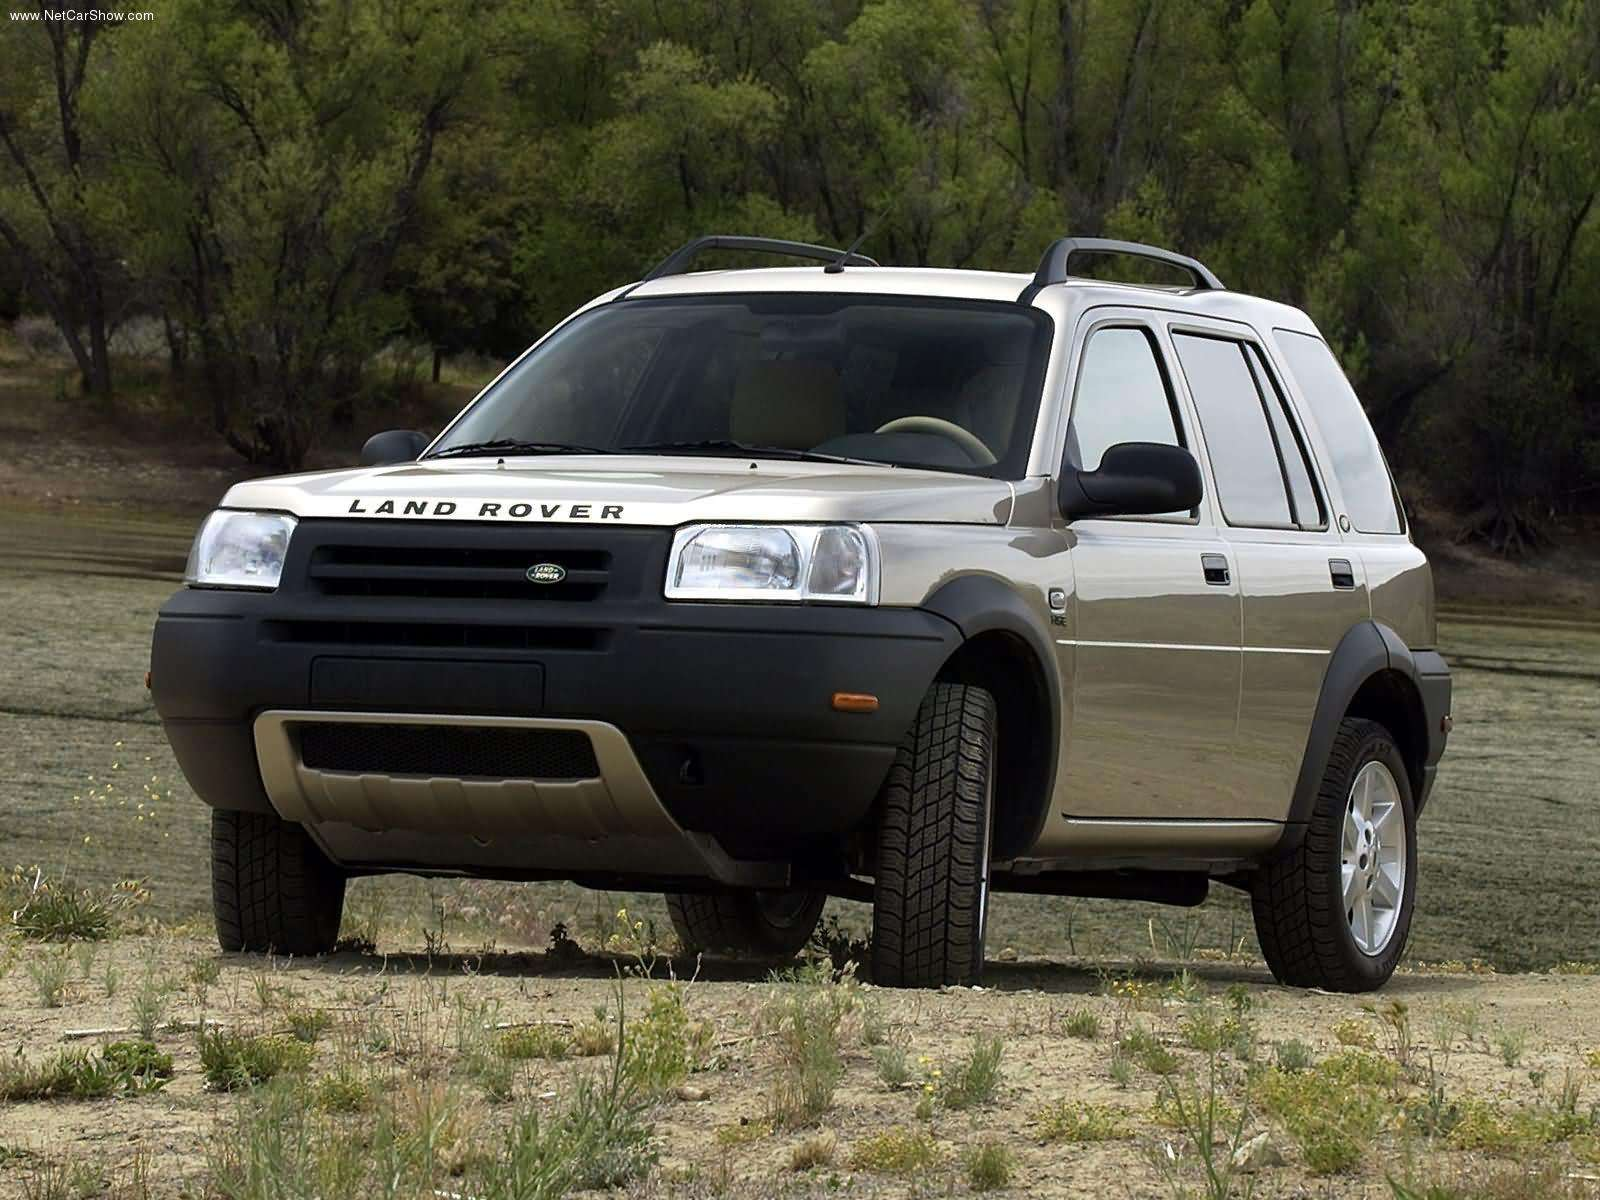 lot gray acq auctions salvage of ca title landrover for sale copart view discovery right cert on rover carfinder hayward en in land auto online or